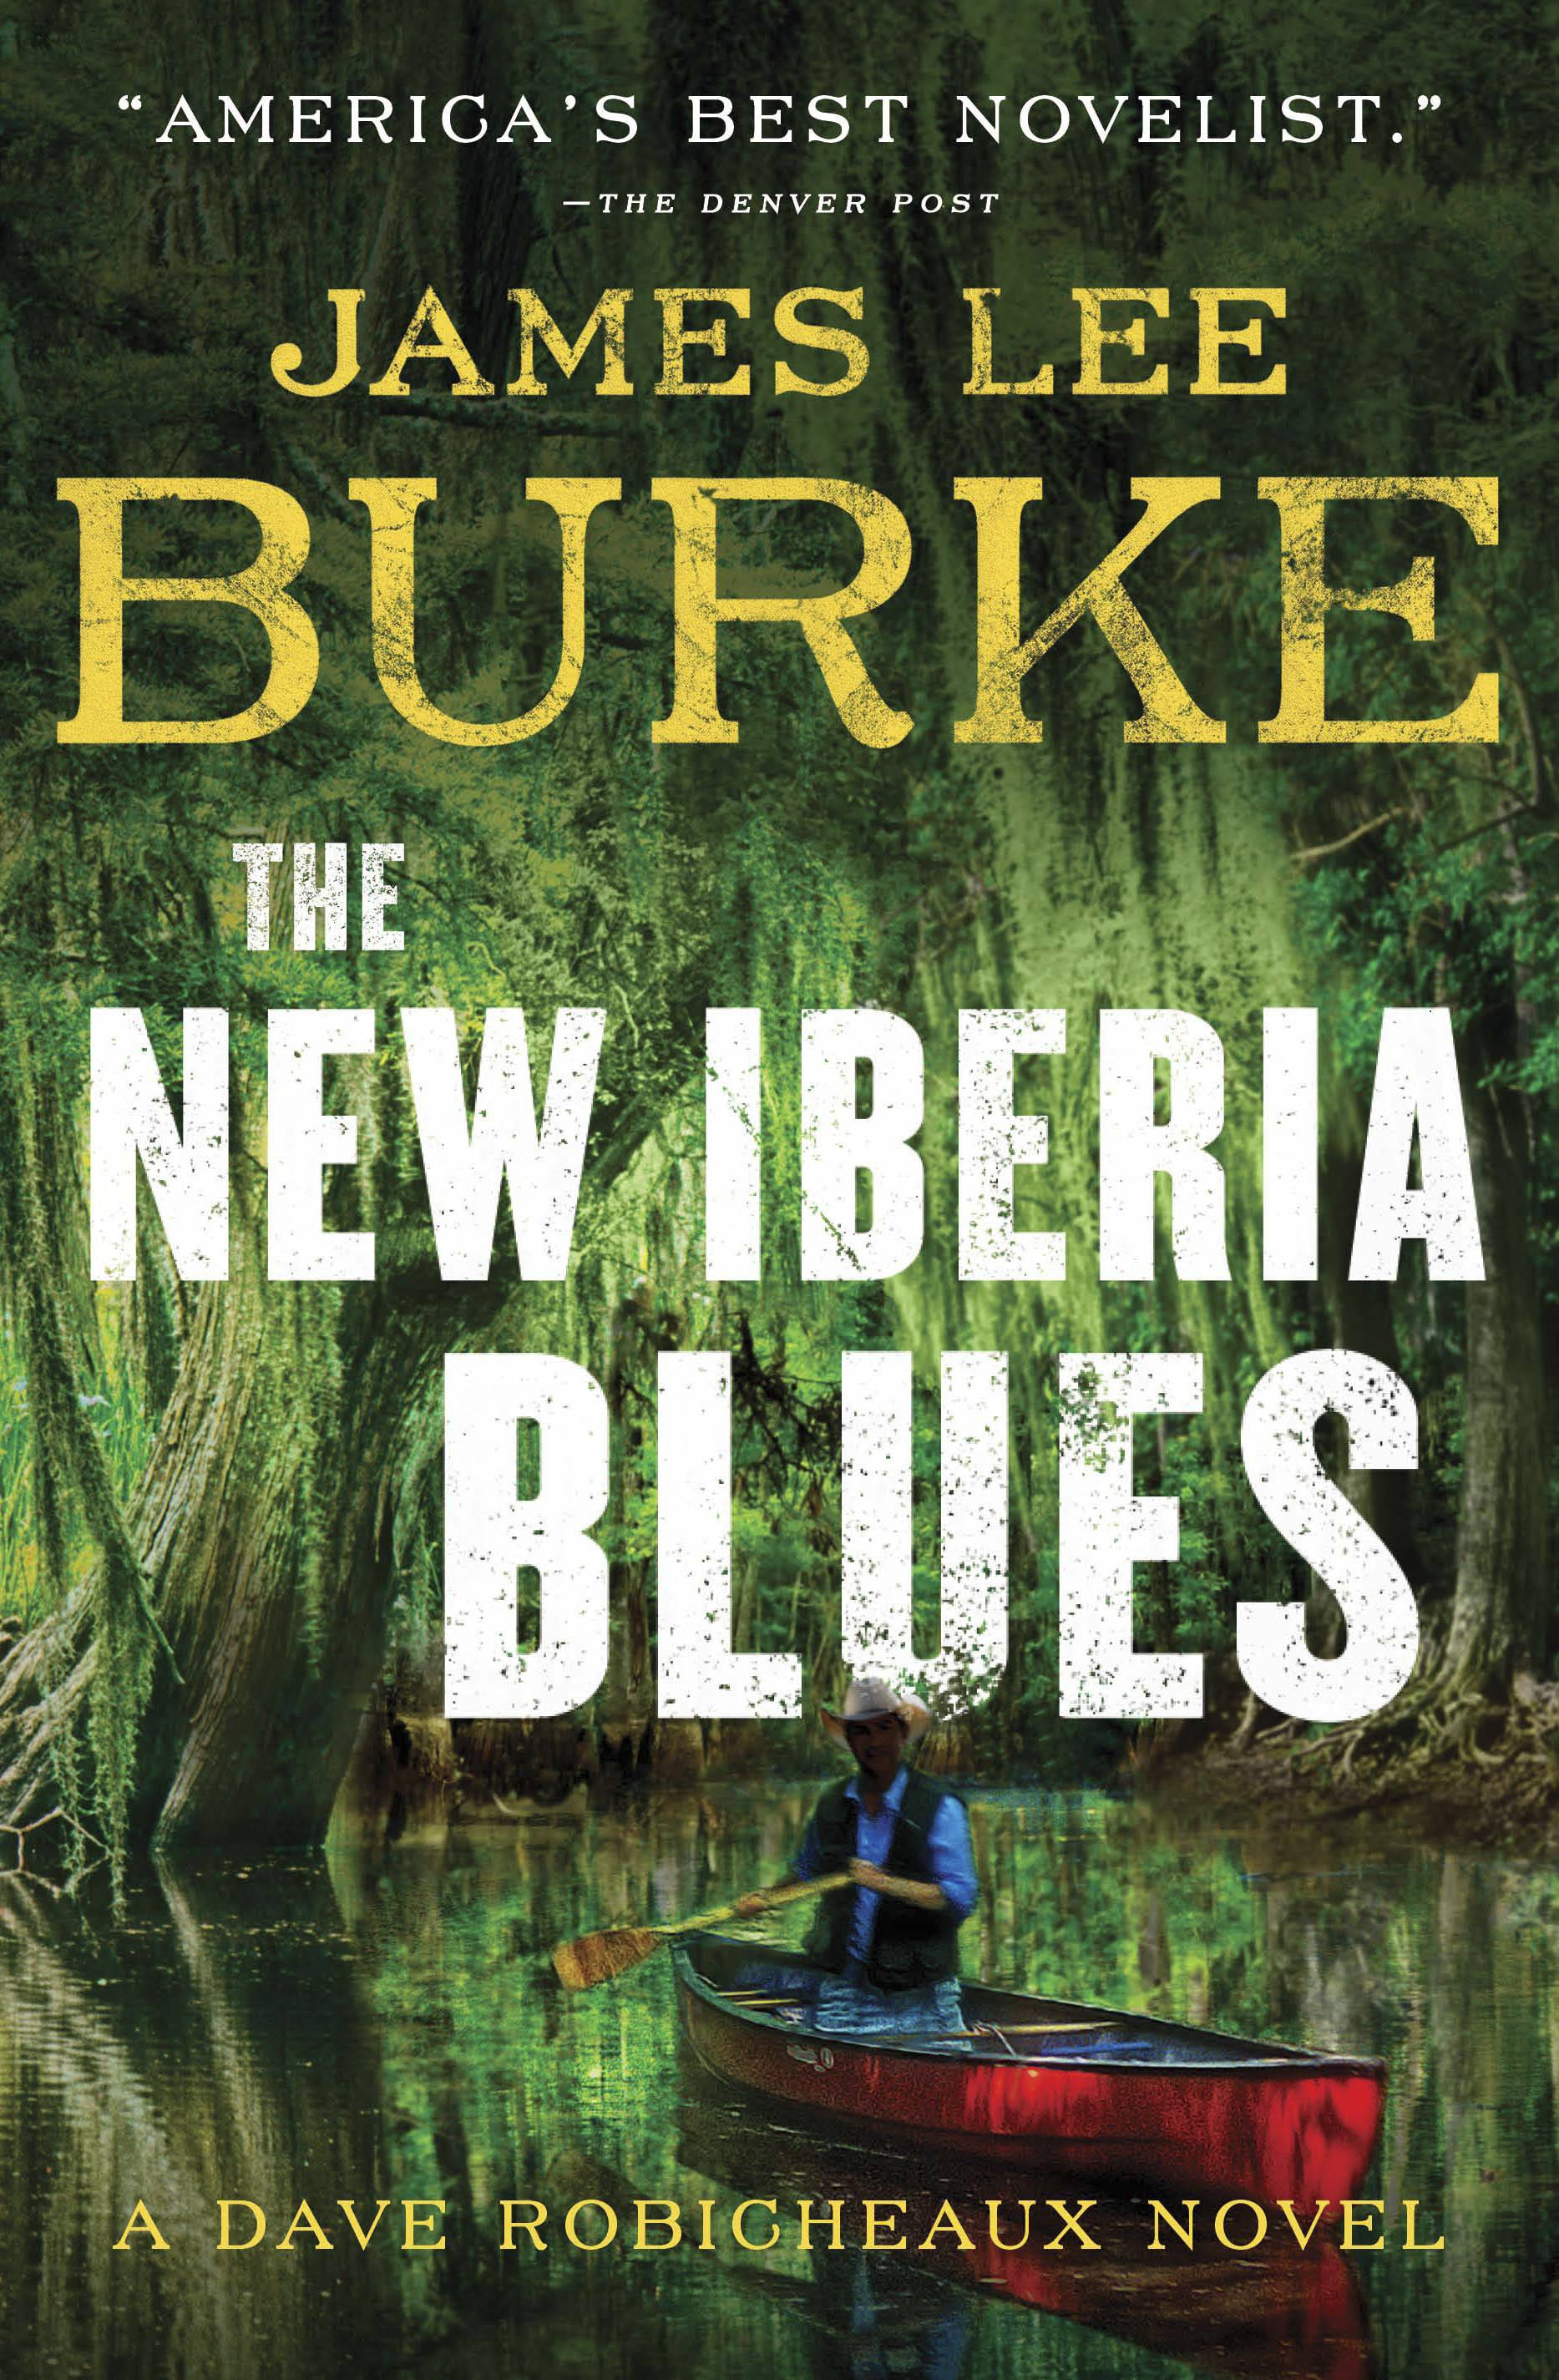 Book review: James Lee Burke's new novel is an engaging, emotional mystery